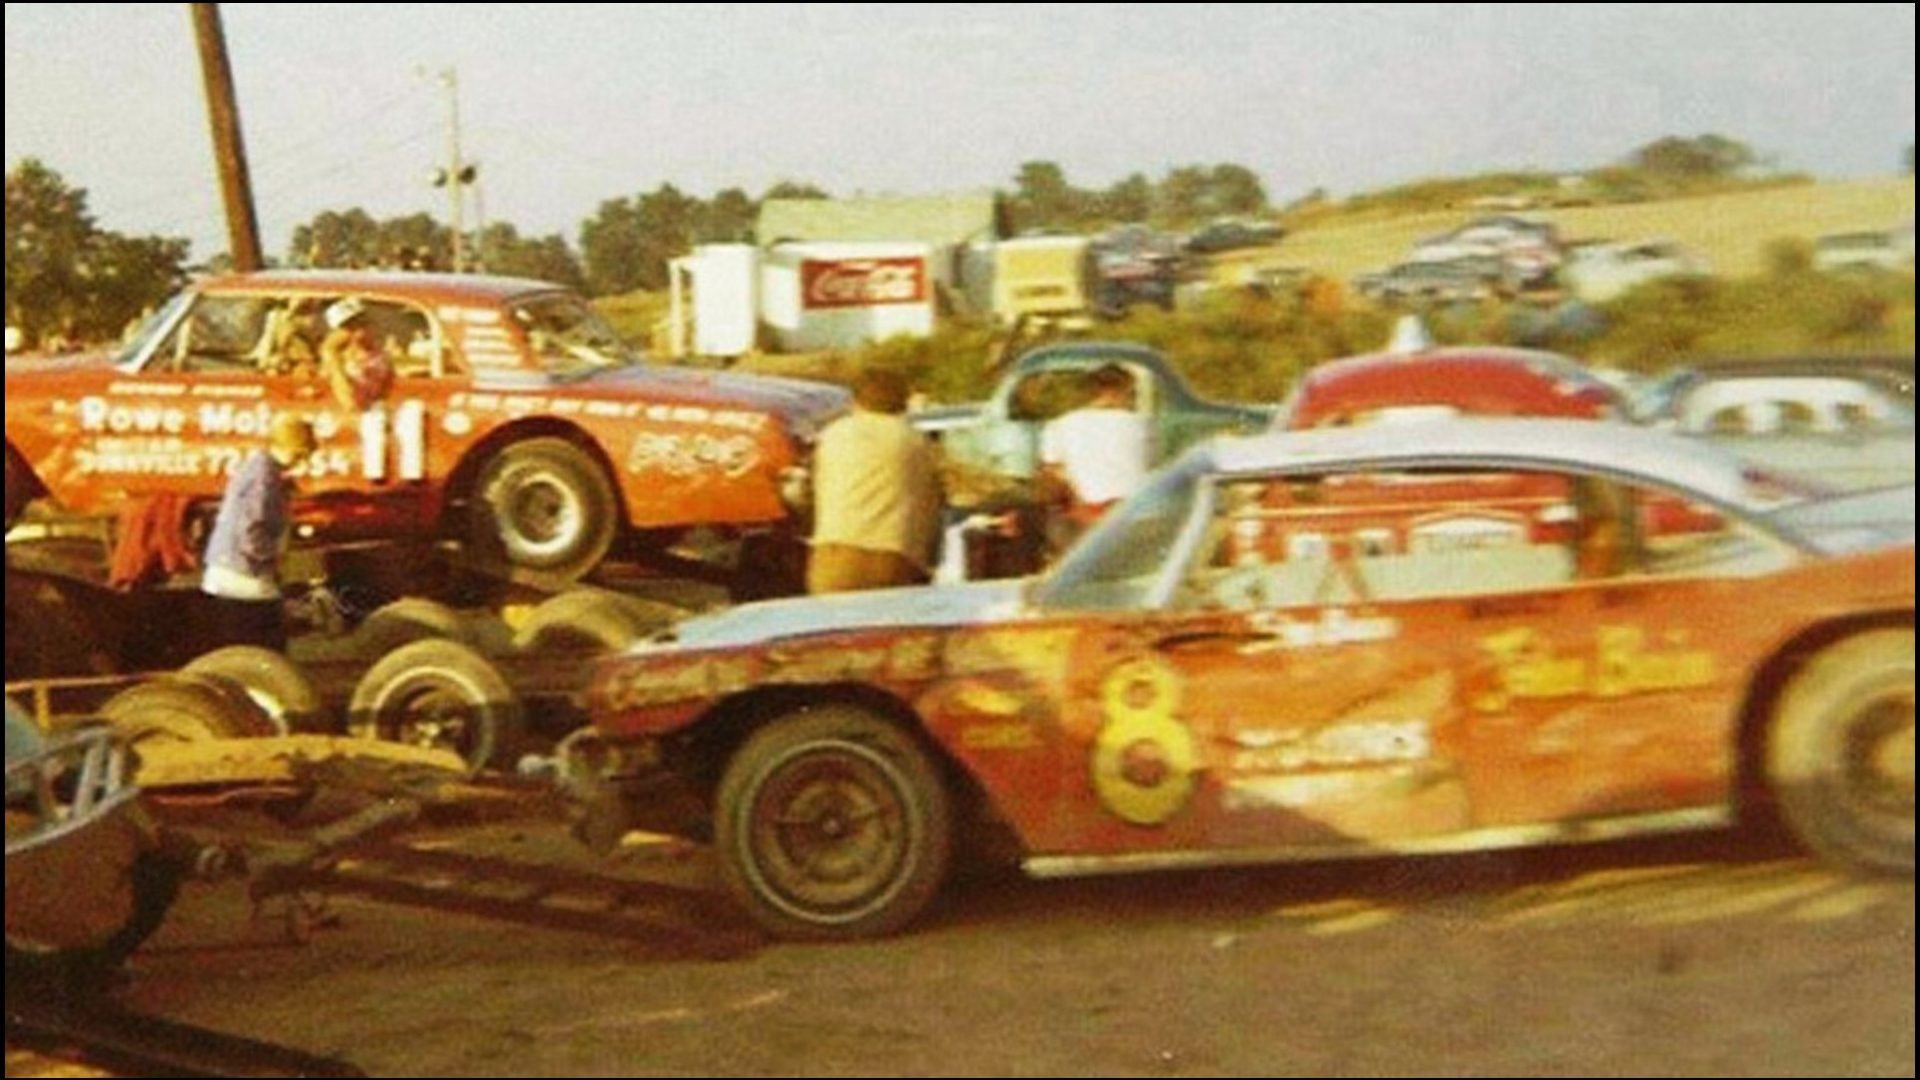 Howard-Disher-at-Ascot-Park-Tillsonburg-Ontario-unloading-his-11-Late-Model-in-1970-the-year-that-Ascot-Park-reopened-after-being-closed-for-several-years.-Courtesy-of-Mike-Lindsay